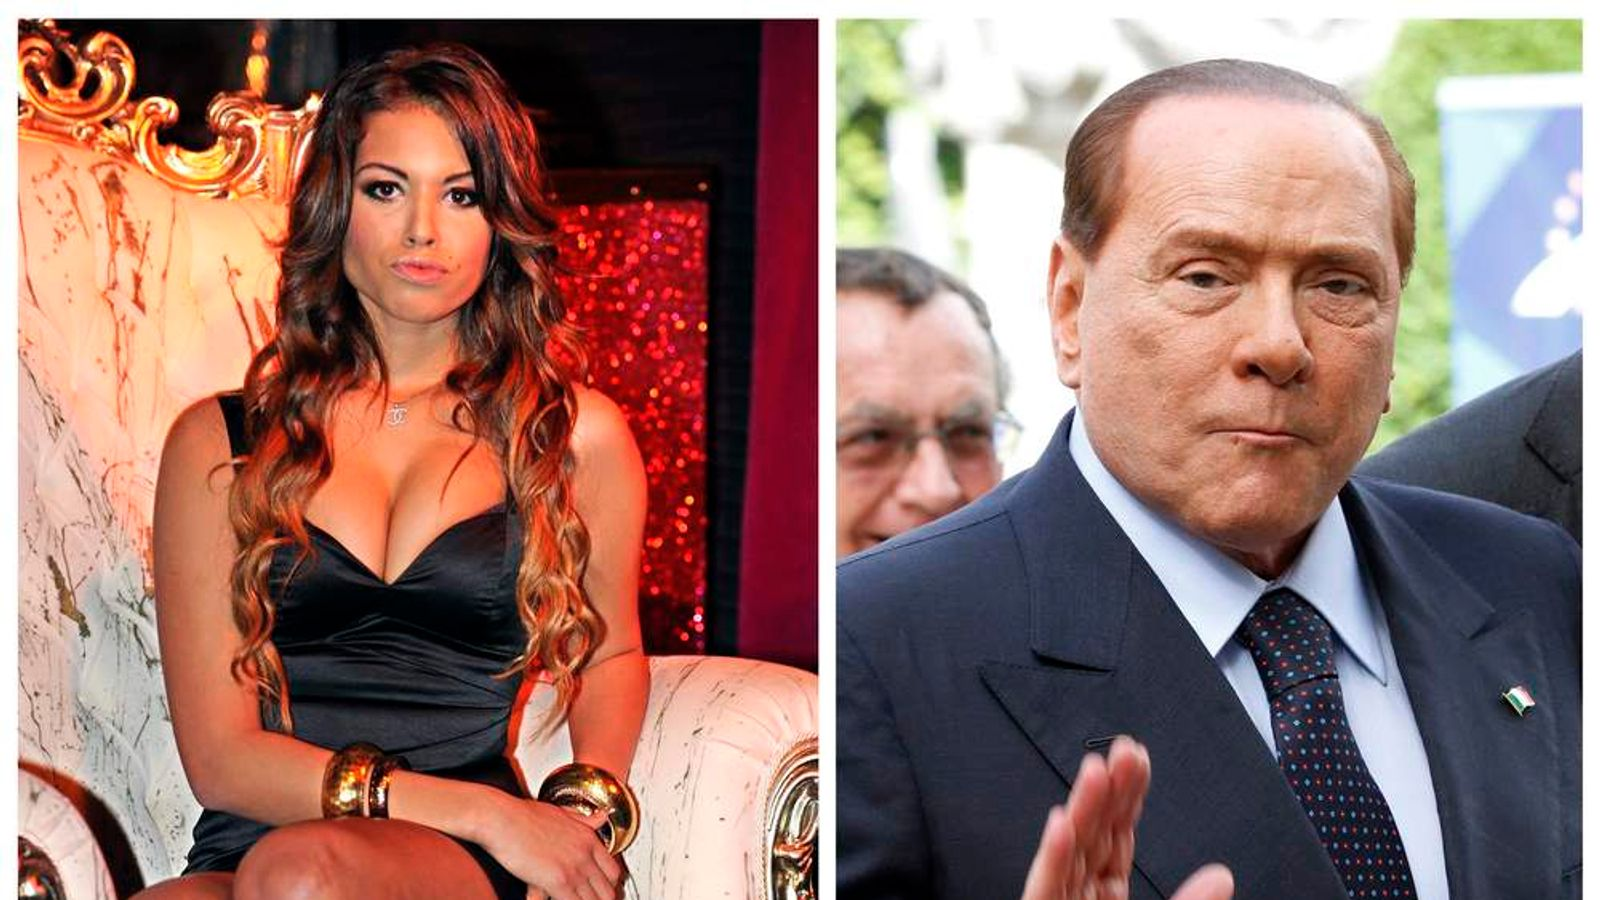 Karima El Mahroug of Morocco posing in Milan (l), and Italy's former Prime Minister Silvio Berlusconi waving in Brussels (r)